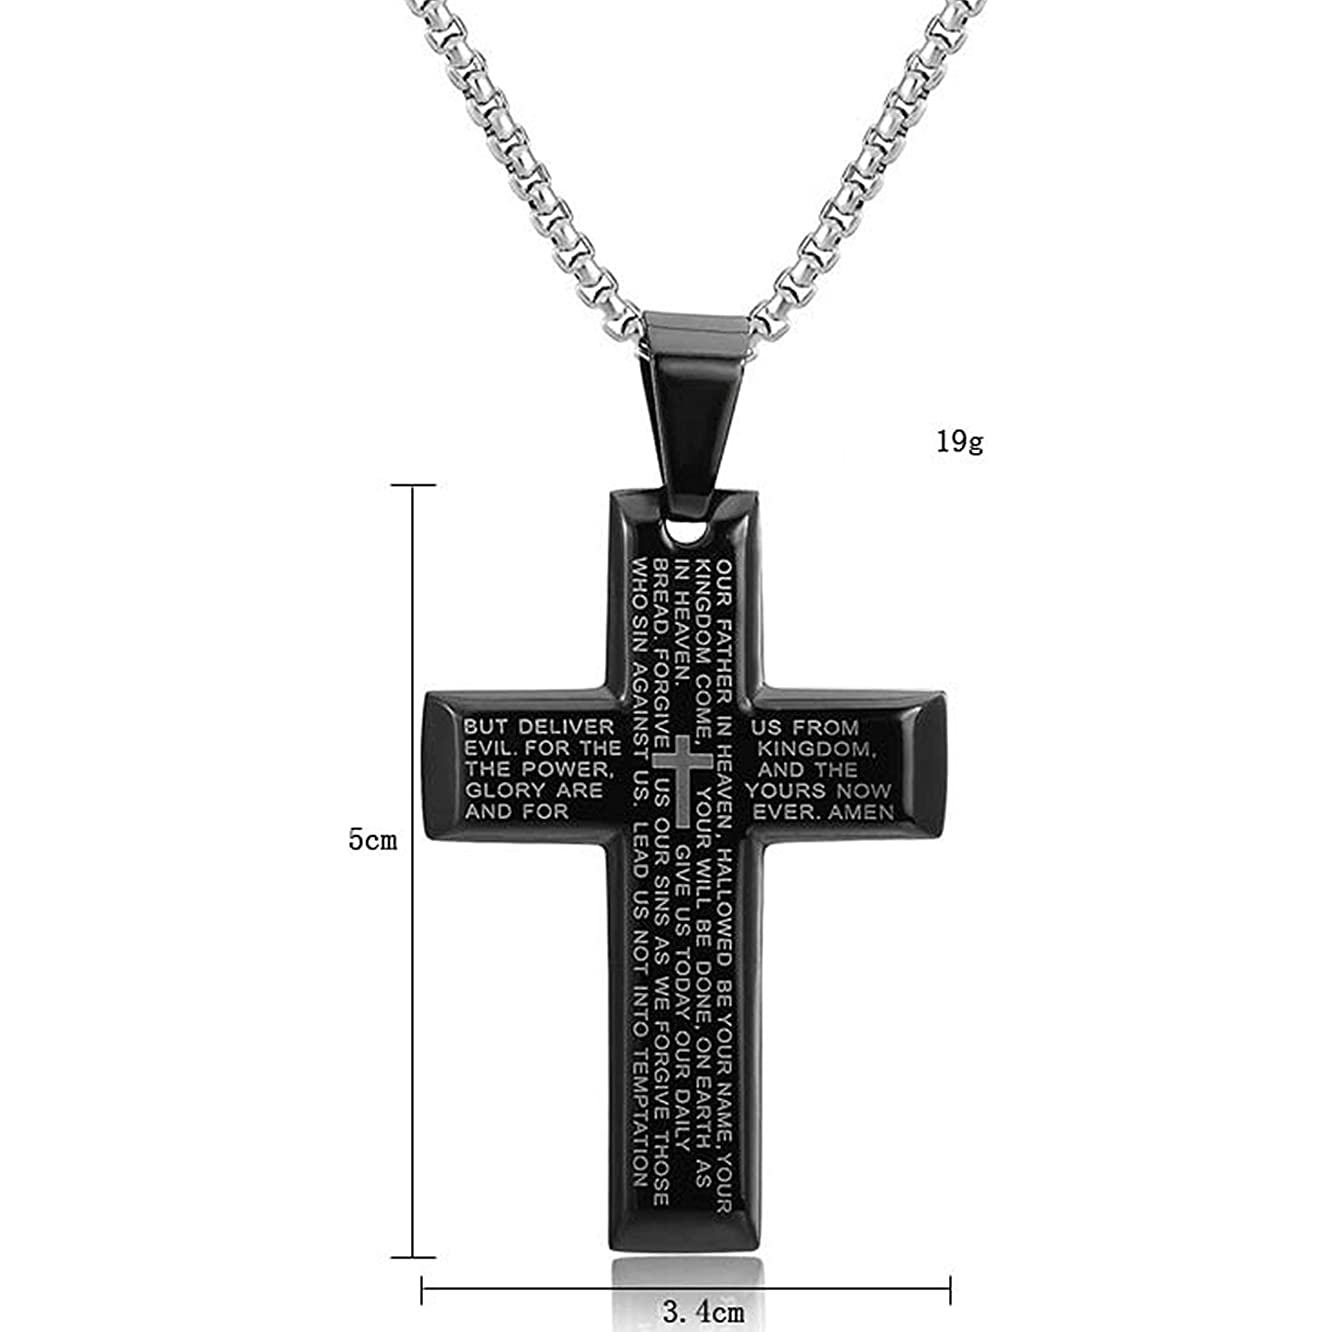 Caspper Titanium Stainless Steel Cross Bible  for Men and Women   Unisex Black Cross   Bible Cross Pendant Necklace with Chain   Christian Jewelry